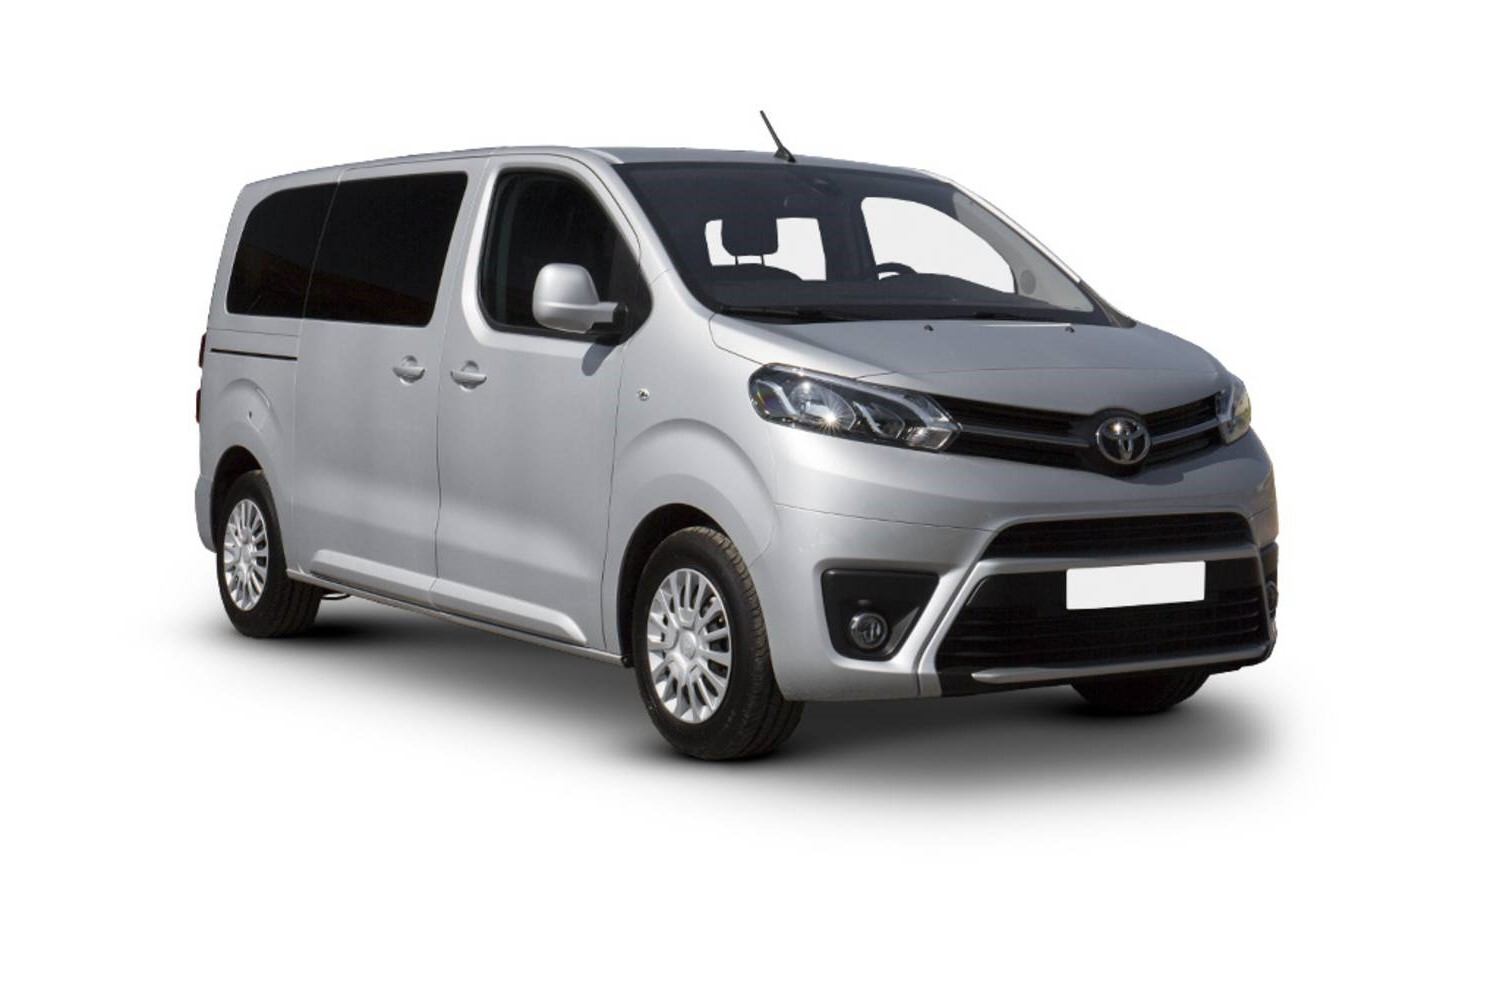 Toyota Proace 2,0 Diesel Transmission: MANUAL